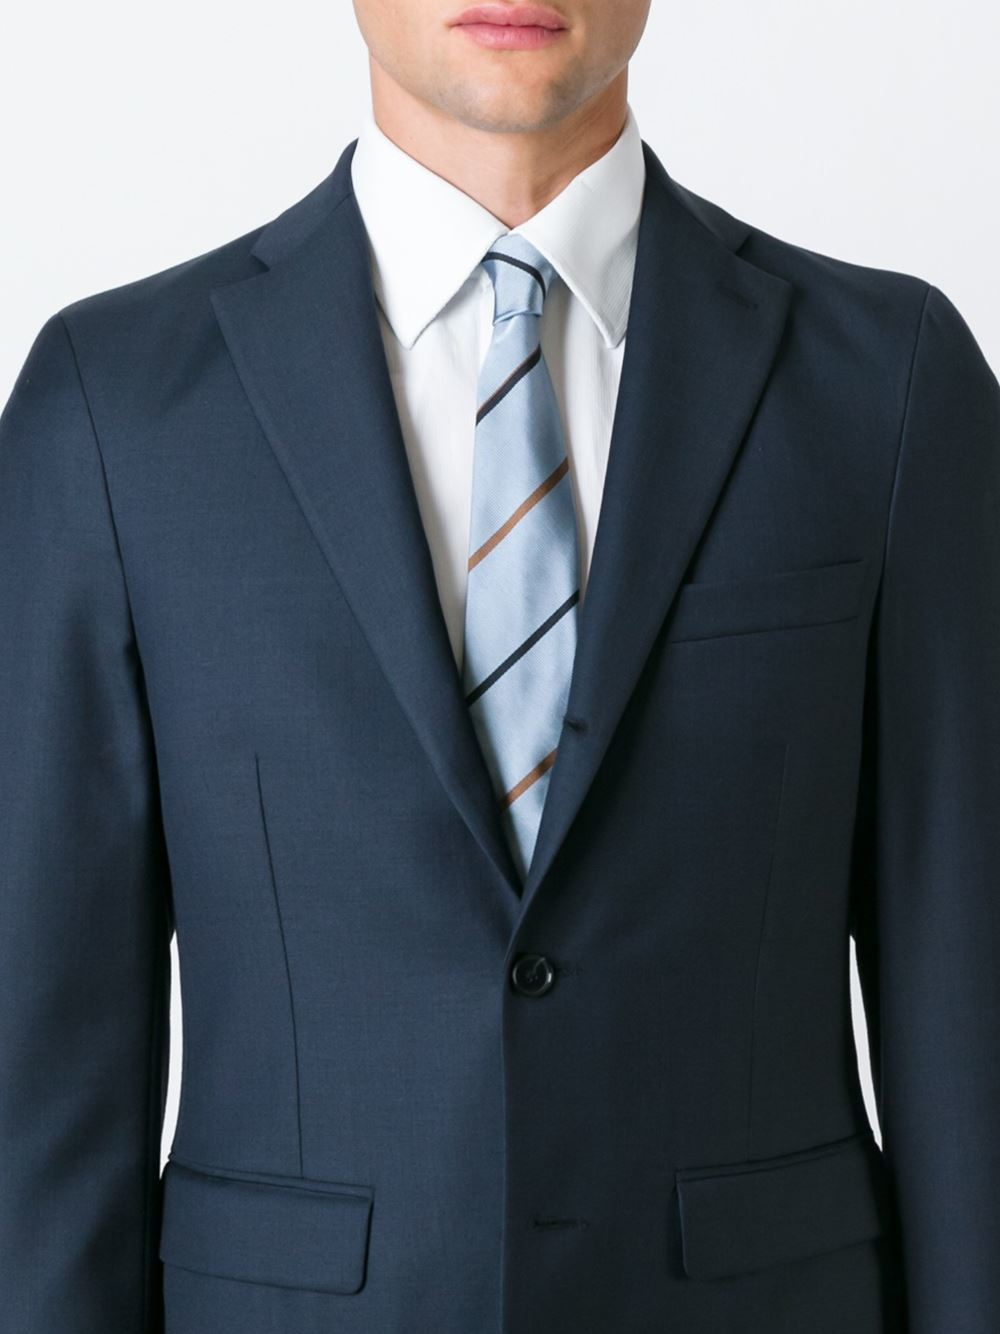 Paul smith striped tie in blue for men lyst for Paul smith doctor who shirt